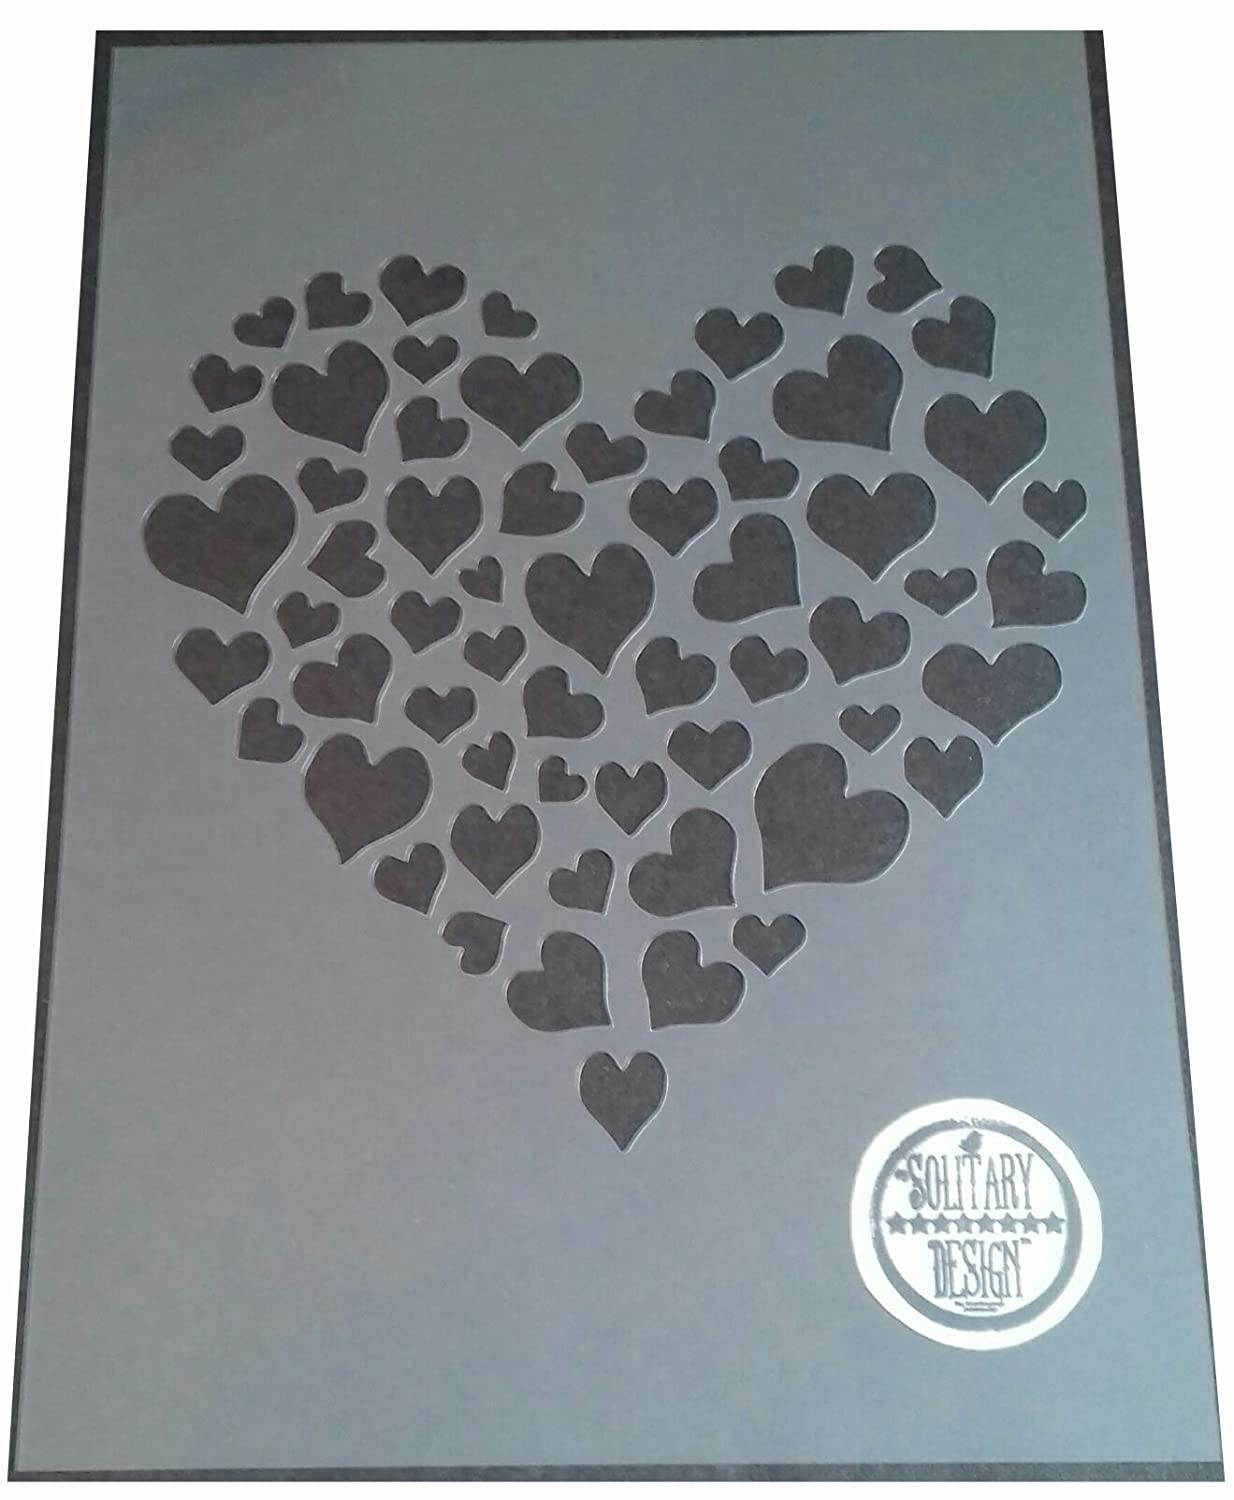 Solitarydesign Shabby Chic Stencil Heart of hearts Rustic Mylar Vintage style A4 297x210mm Wall art